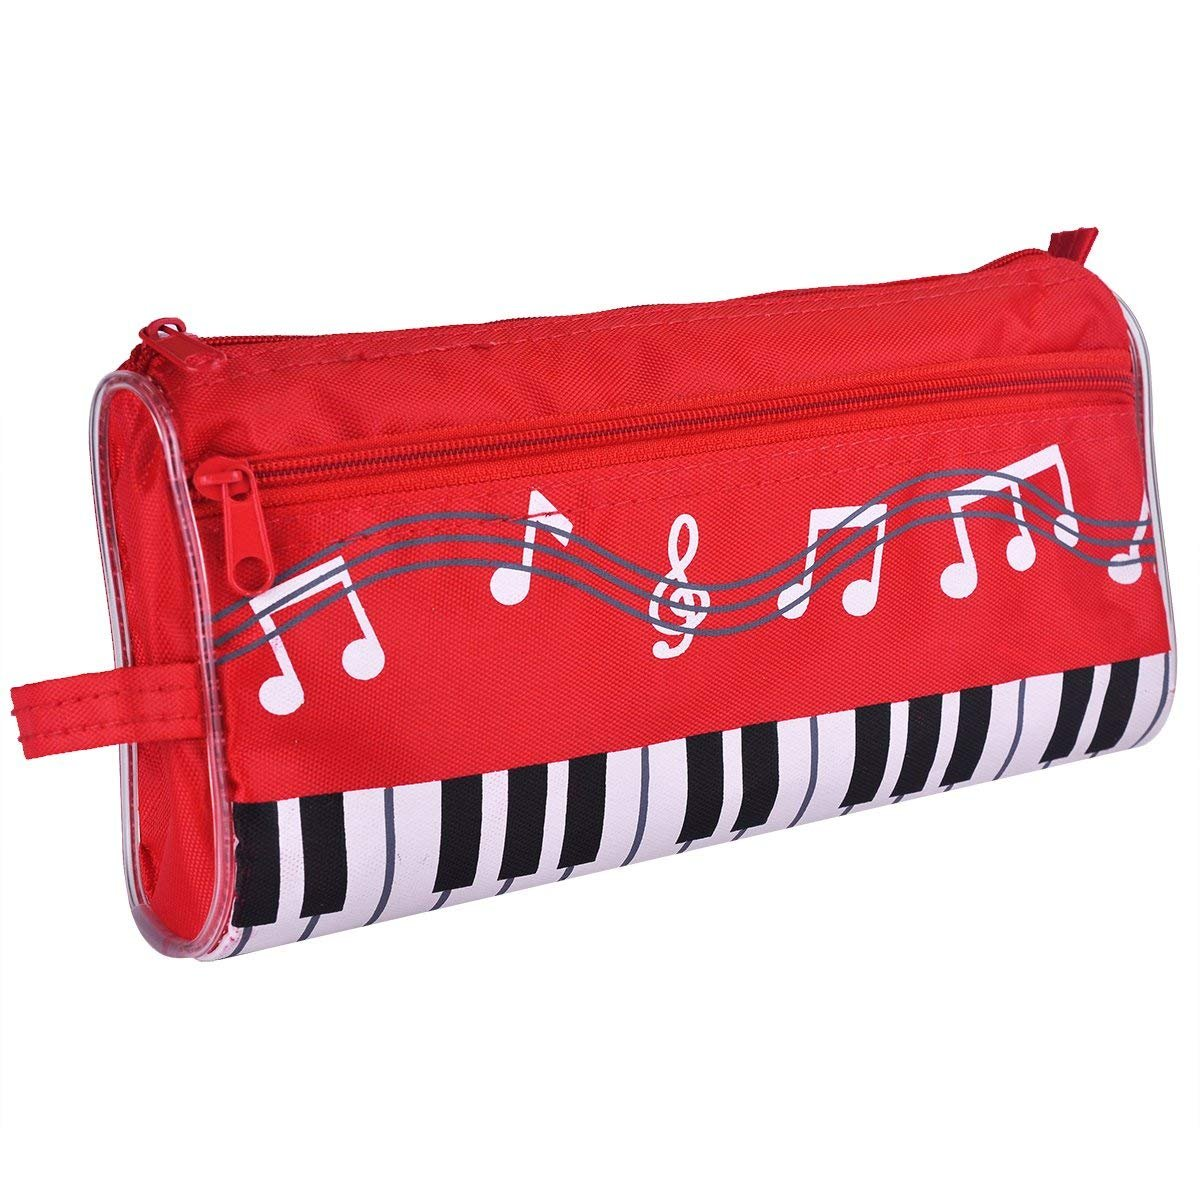 Multifunctional Pencil Case Cosmetic Makeup Bag, Cute Large Storage Bag (Sky Blue) Factory Outlet